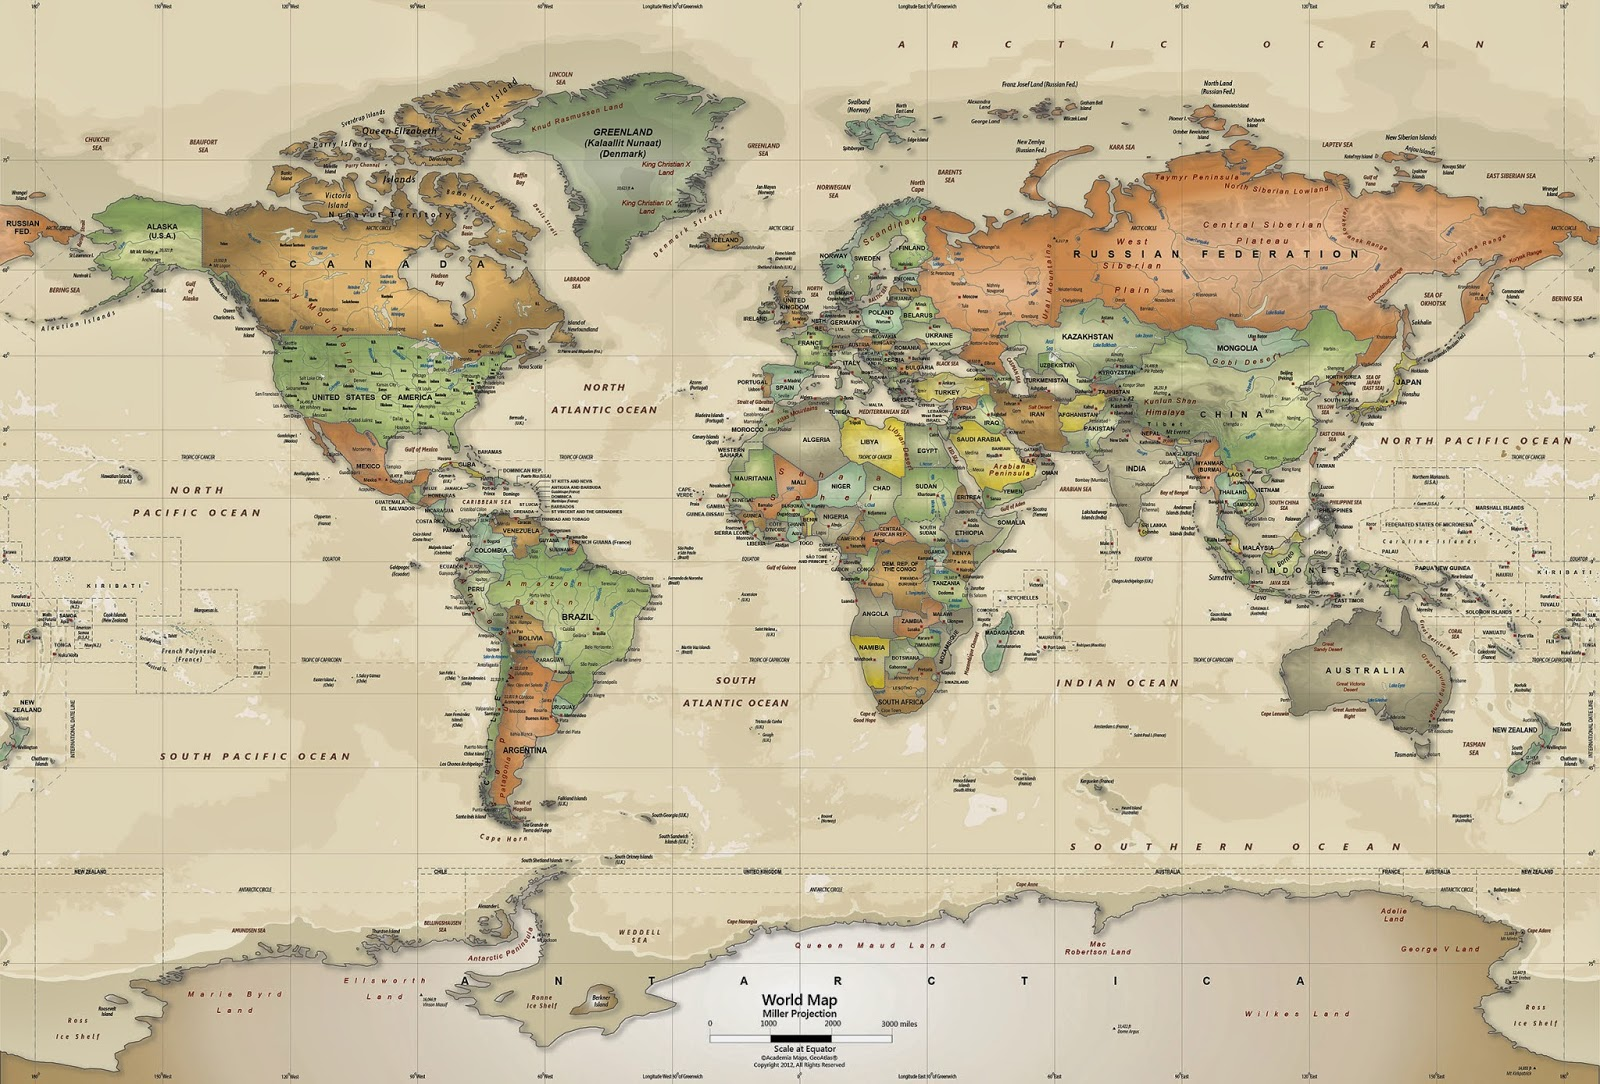 World map with country name hd image picture ideas references world map with country name hd image world map with country names and capital cities download gumiabroncs Choice Image